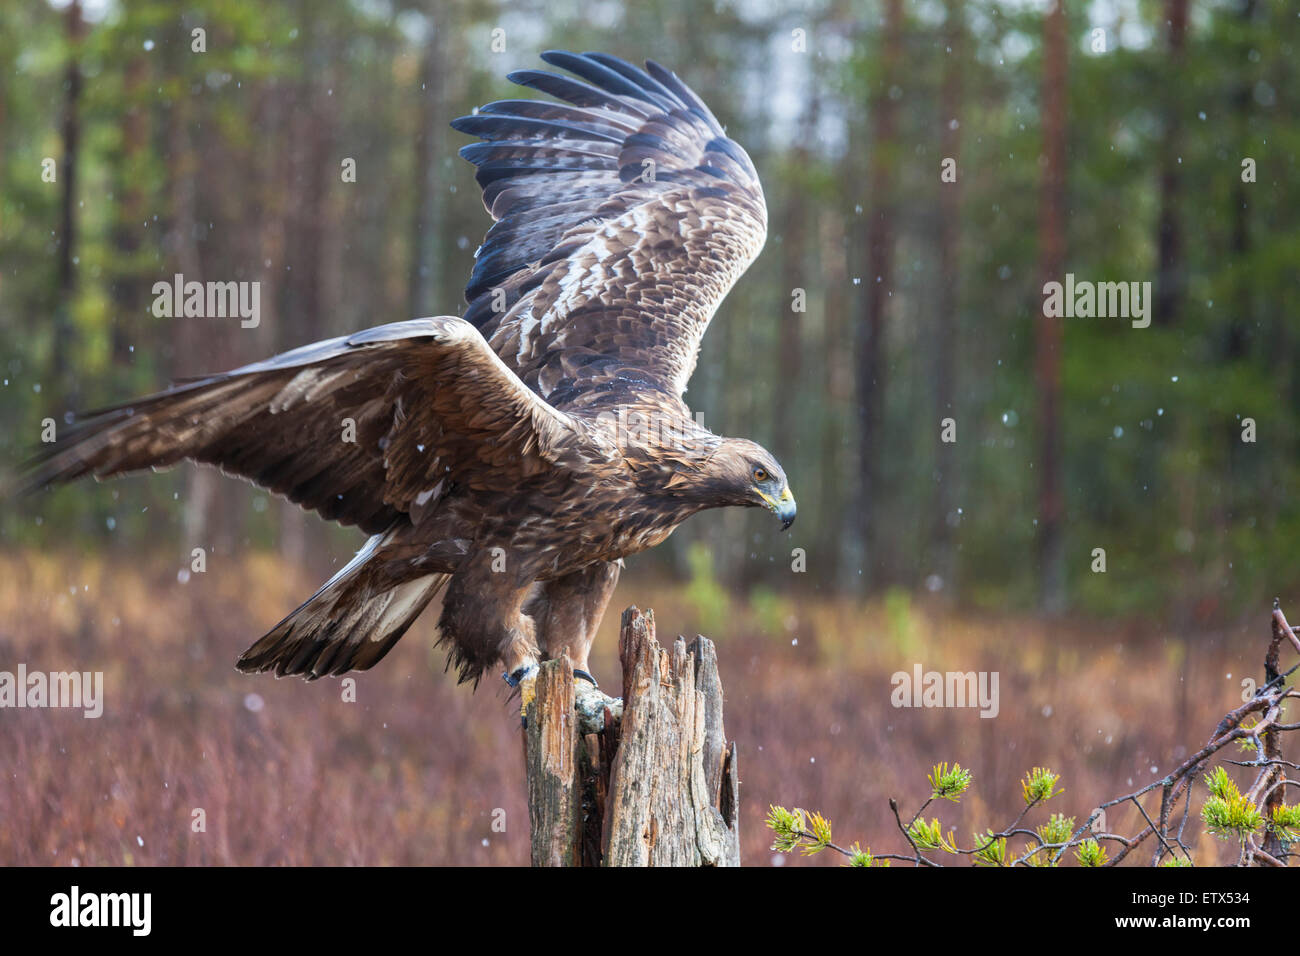 Golden eagle sitting on a trunk and flapping his wings in sweden, Scandinavia - Stock Image